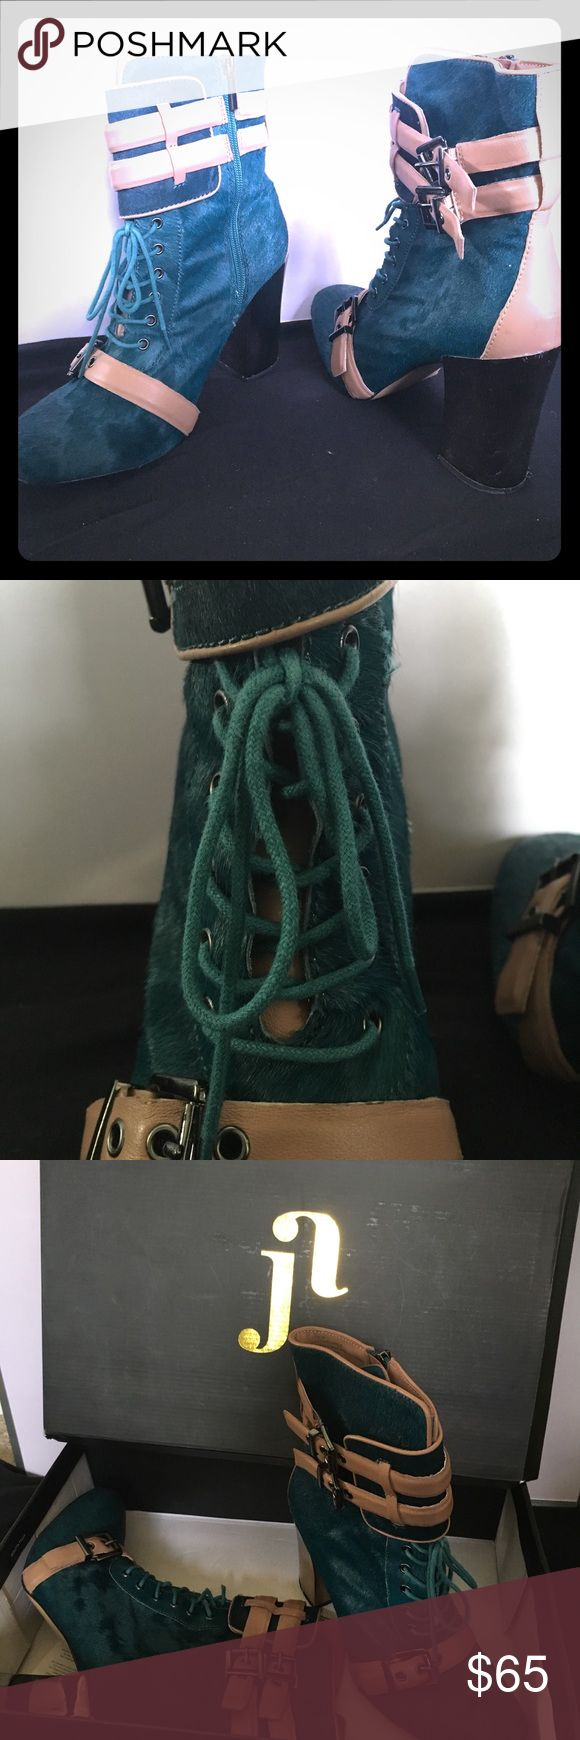 """Teal Leather and Calf Hair Bootie 4"""" Metalic Heel 100% Leather Teal Calf Hair with Beige Leather Trim June by June Ambrose HSN Shoes Ankle Boots & Booties"""